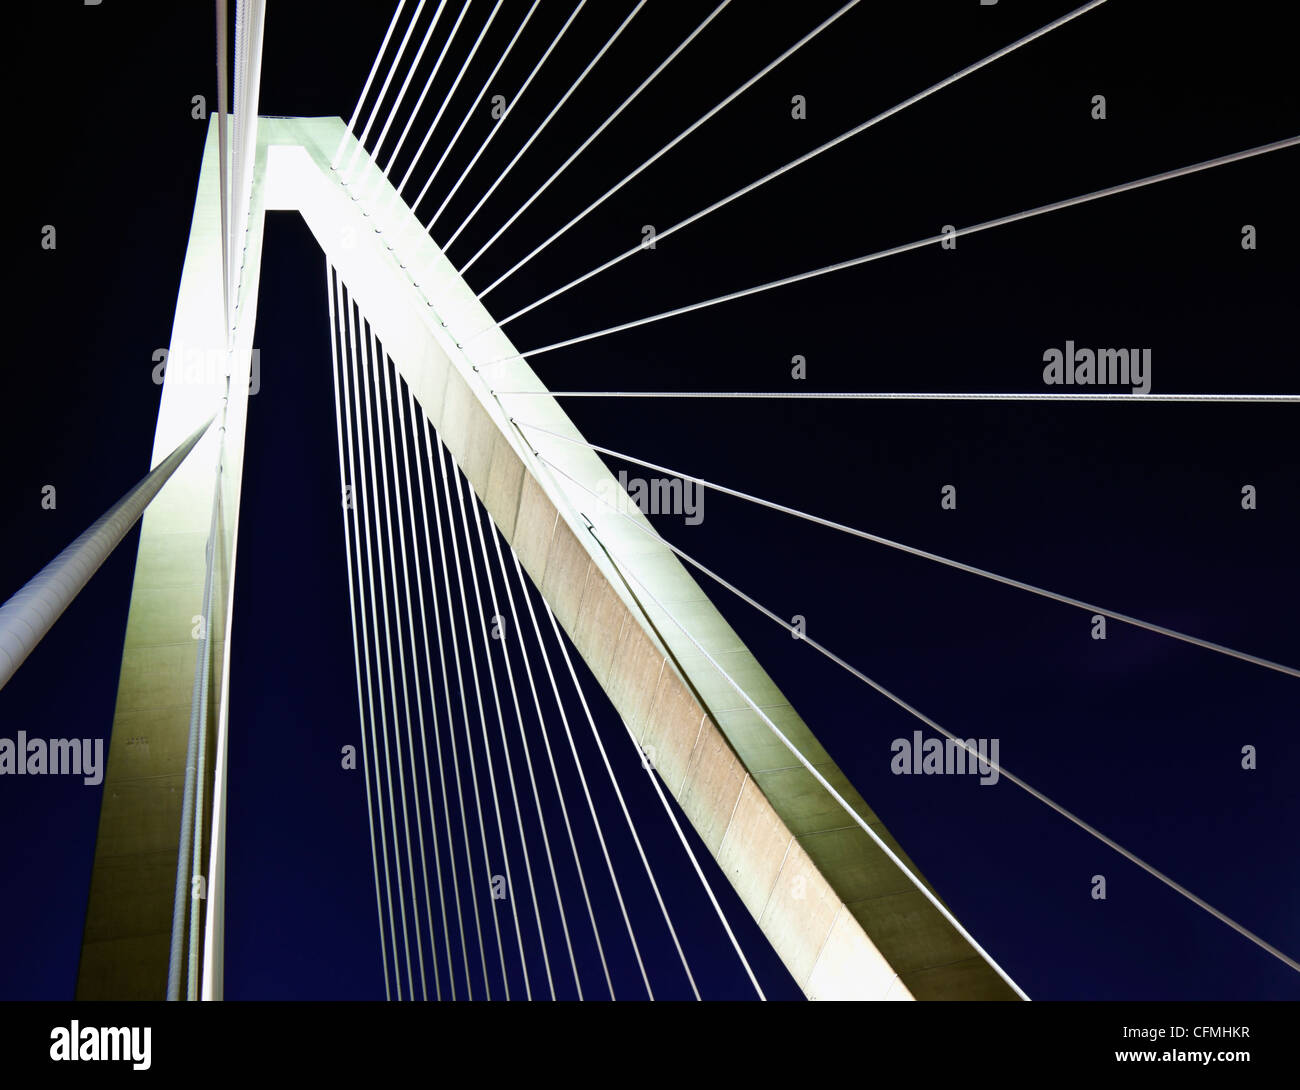 USA, South Carolina, Charleston, Detail of Arthur Ravenel Jr. Bridge - Stock Image